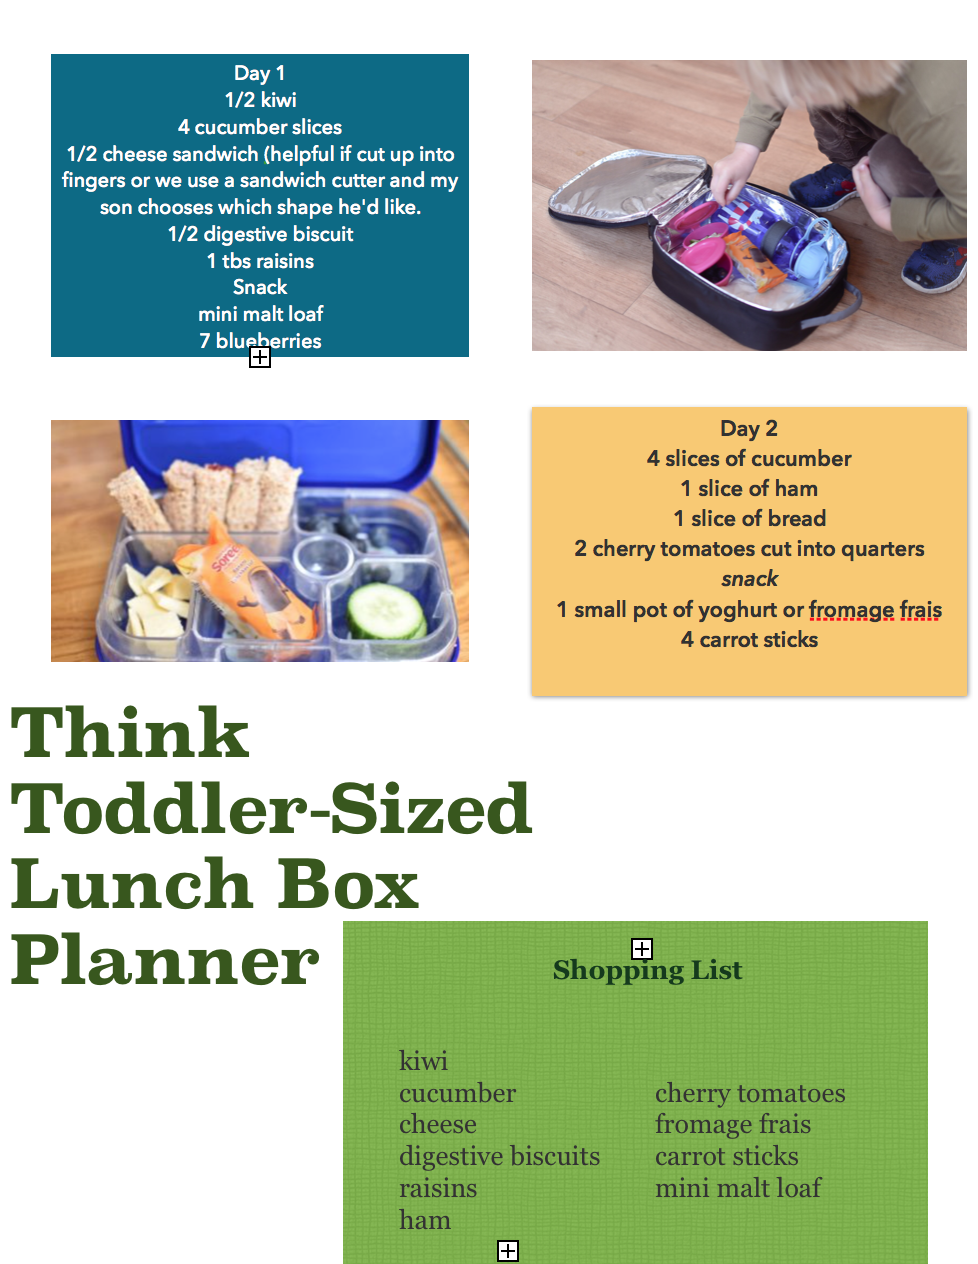 a toddler lunch box meal planner for the Toddler sized challenge